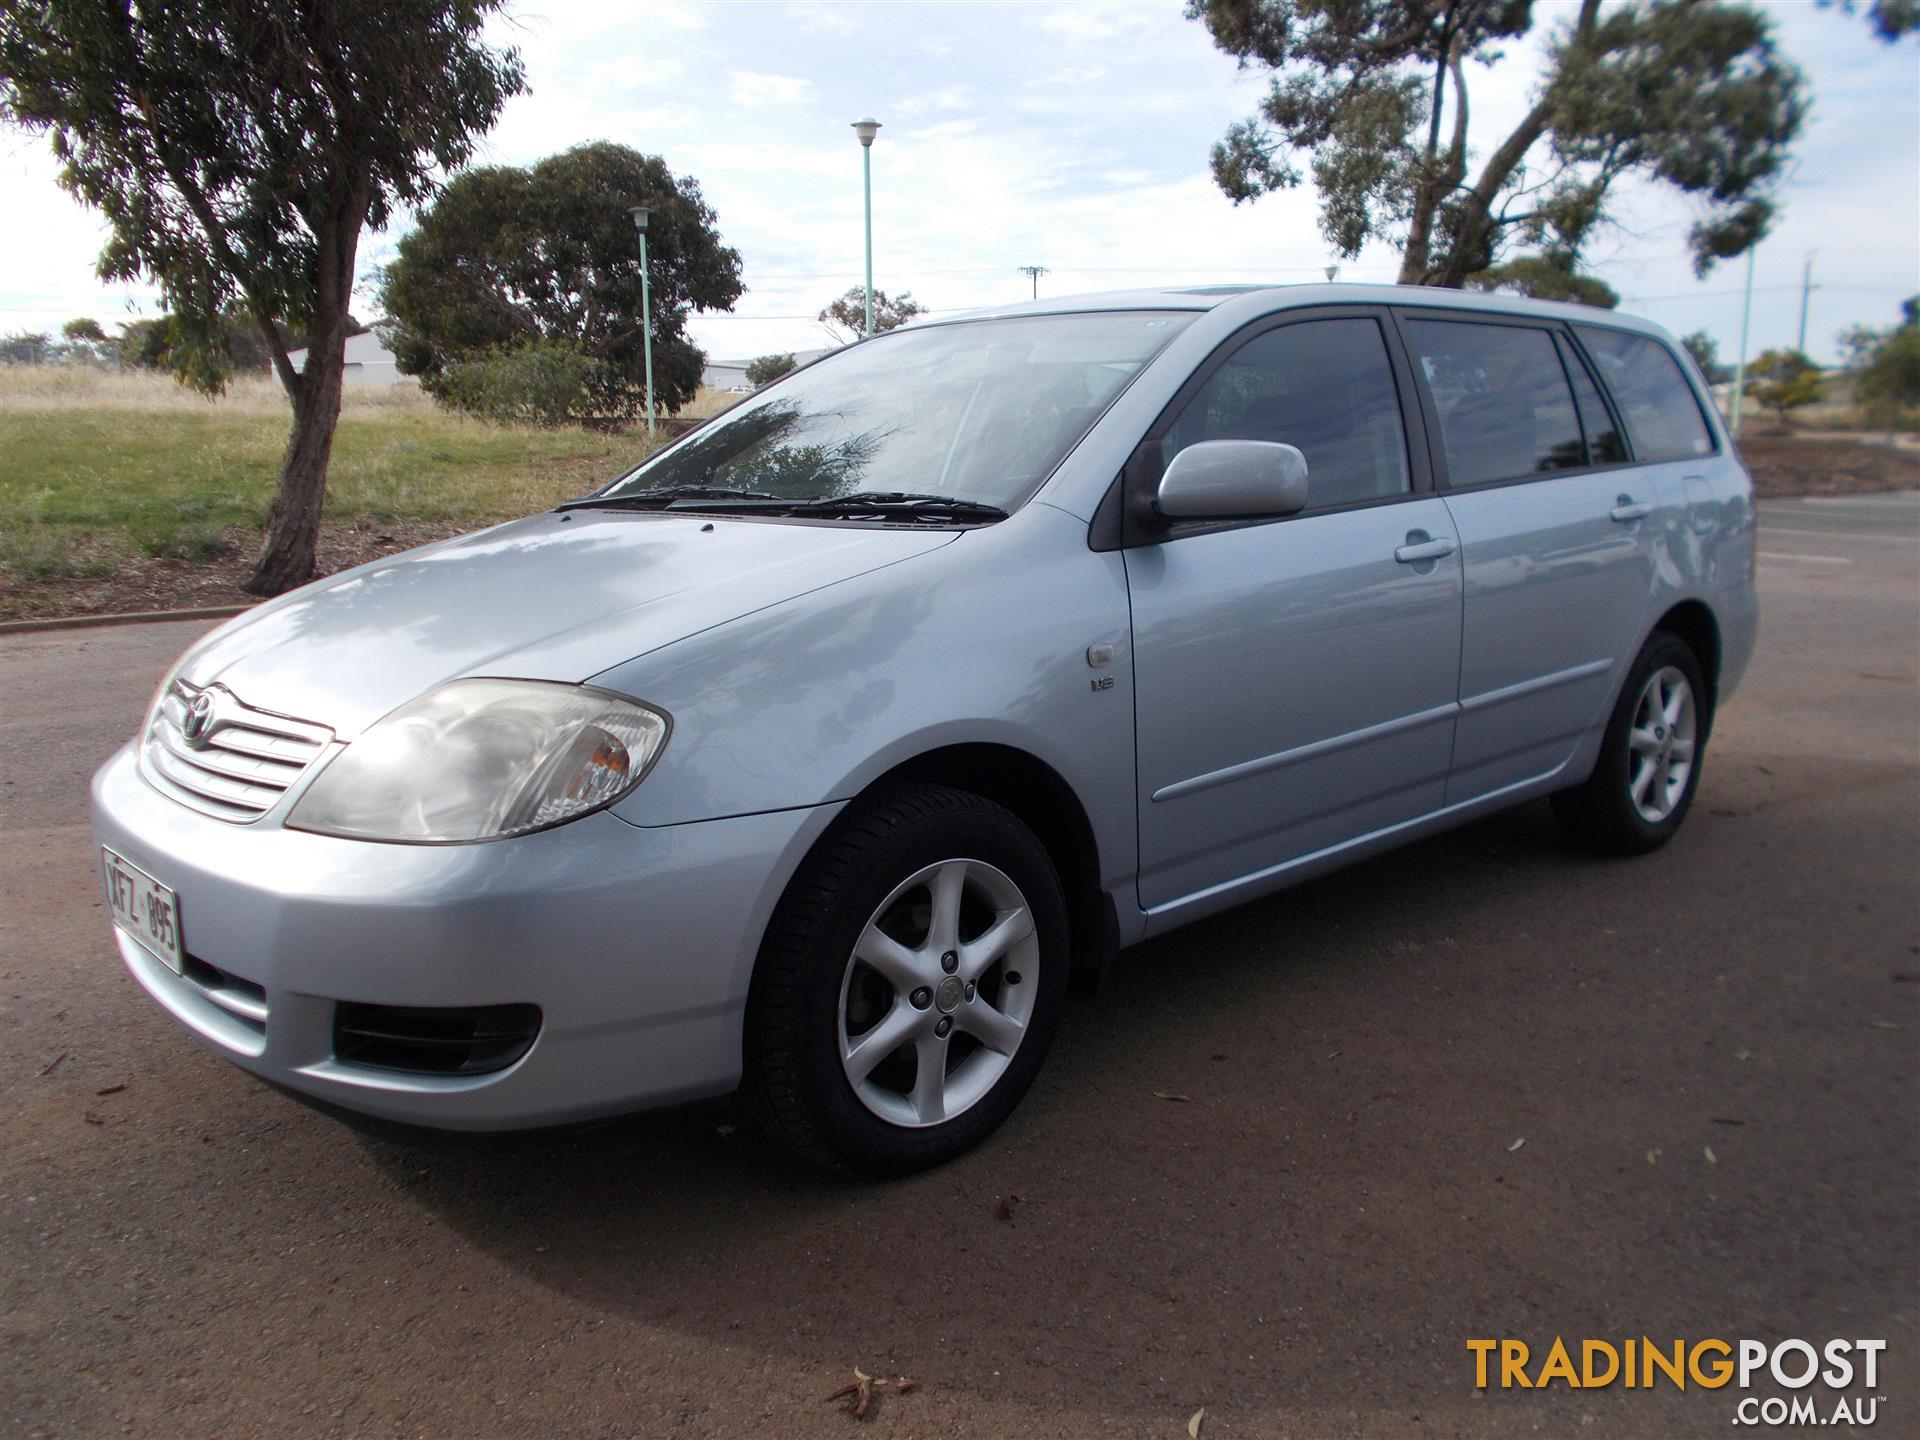 2005 Toyota Corolla Conquest Zze122r 4d Wagon For Sale In